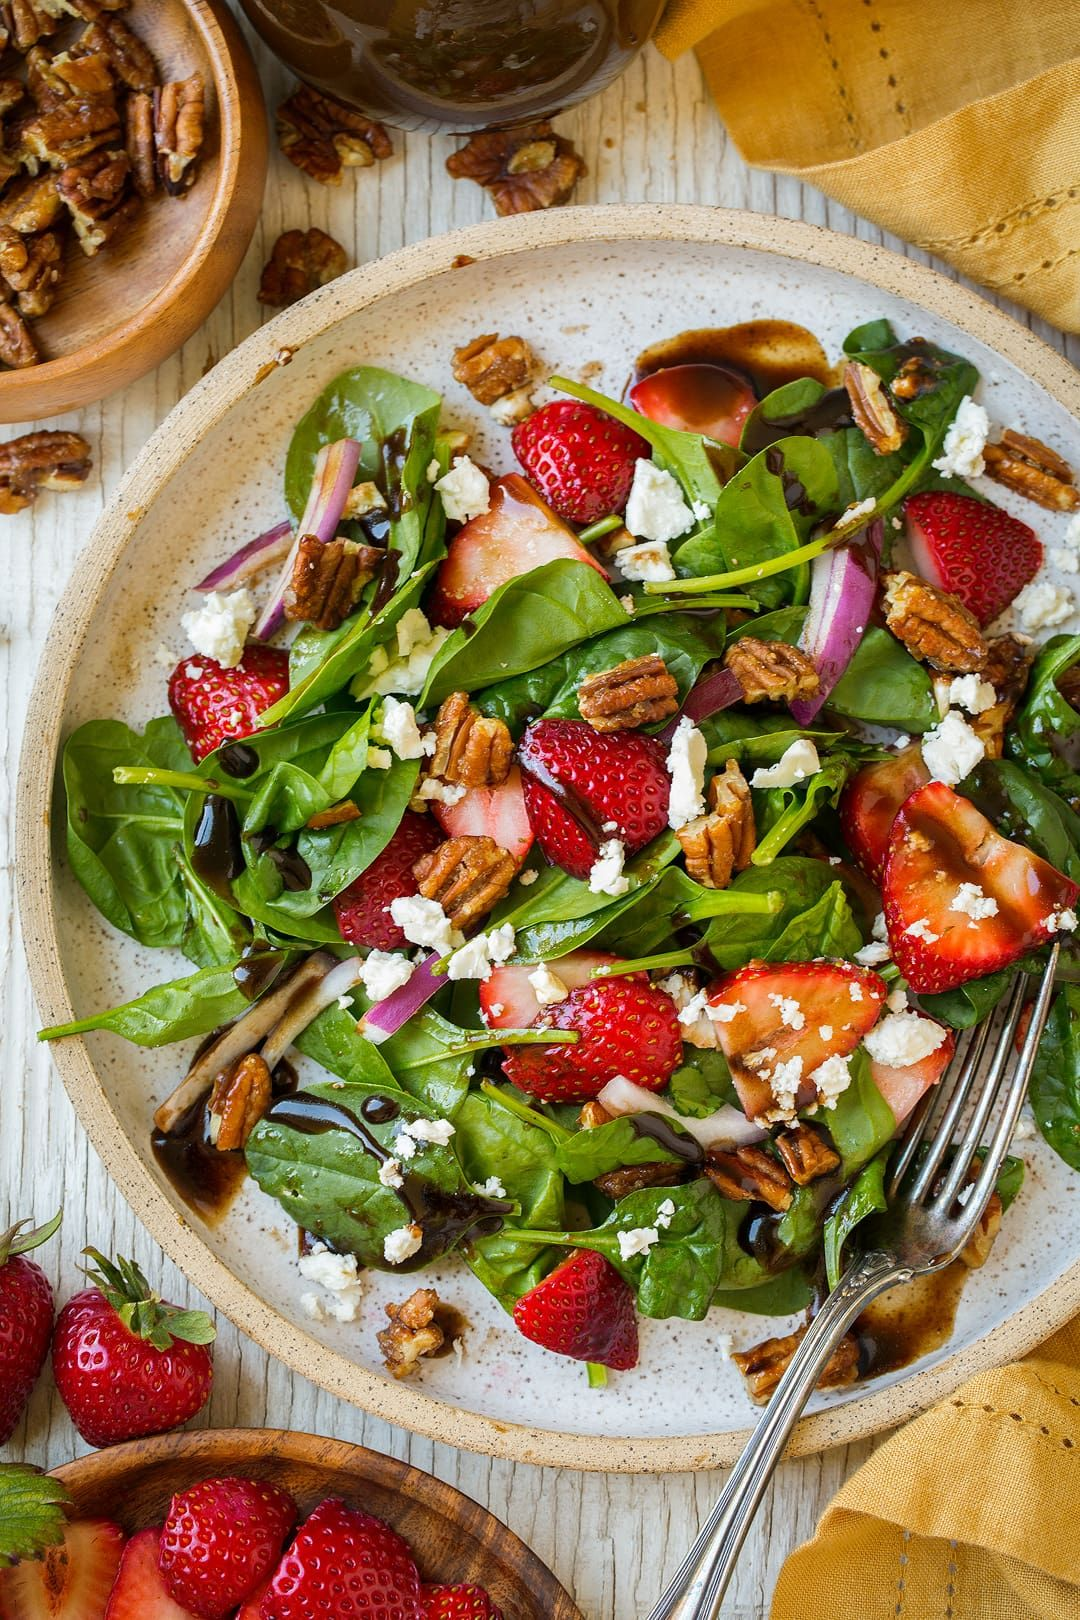 lettuce salad with strawberries - 736×1104